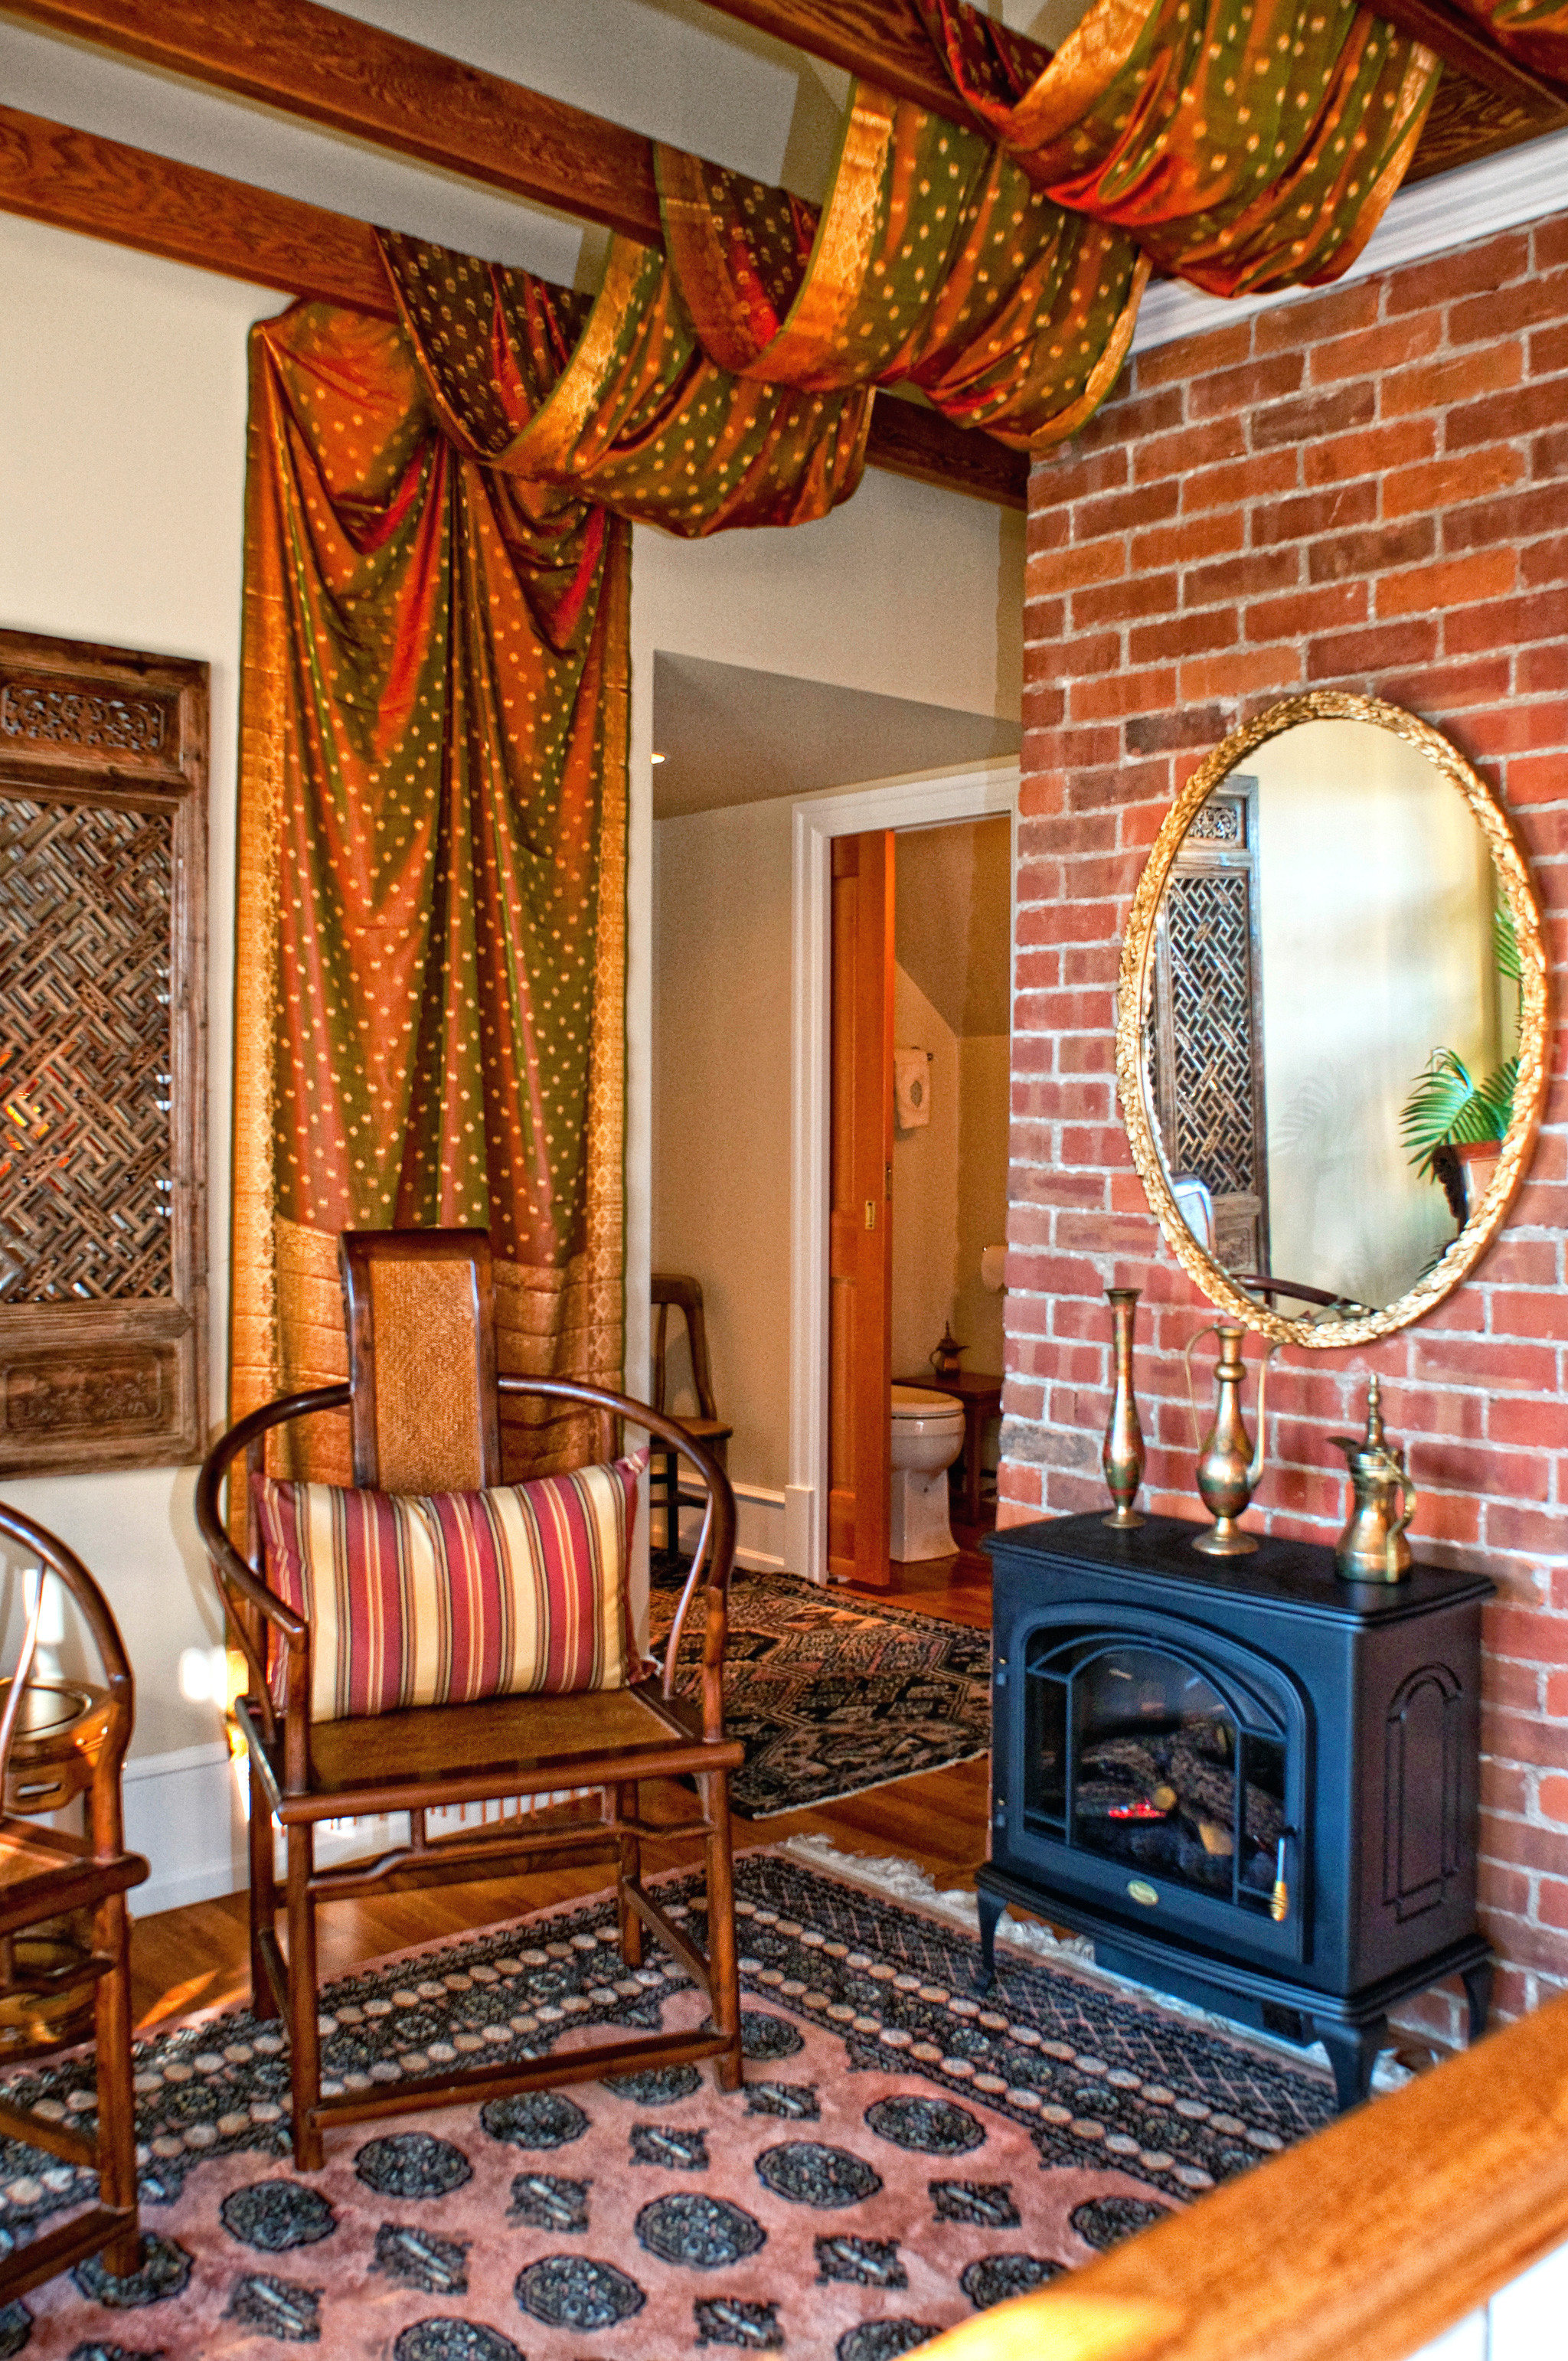 B&B Bedroom Classic Fireplace Historic living room home